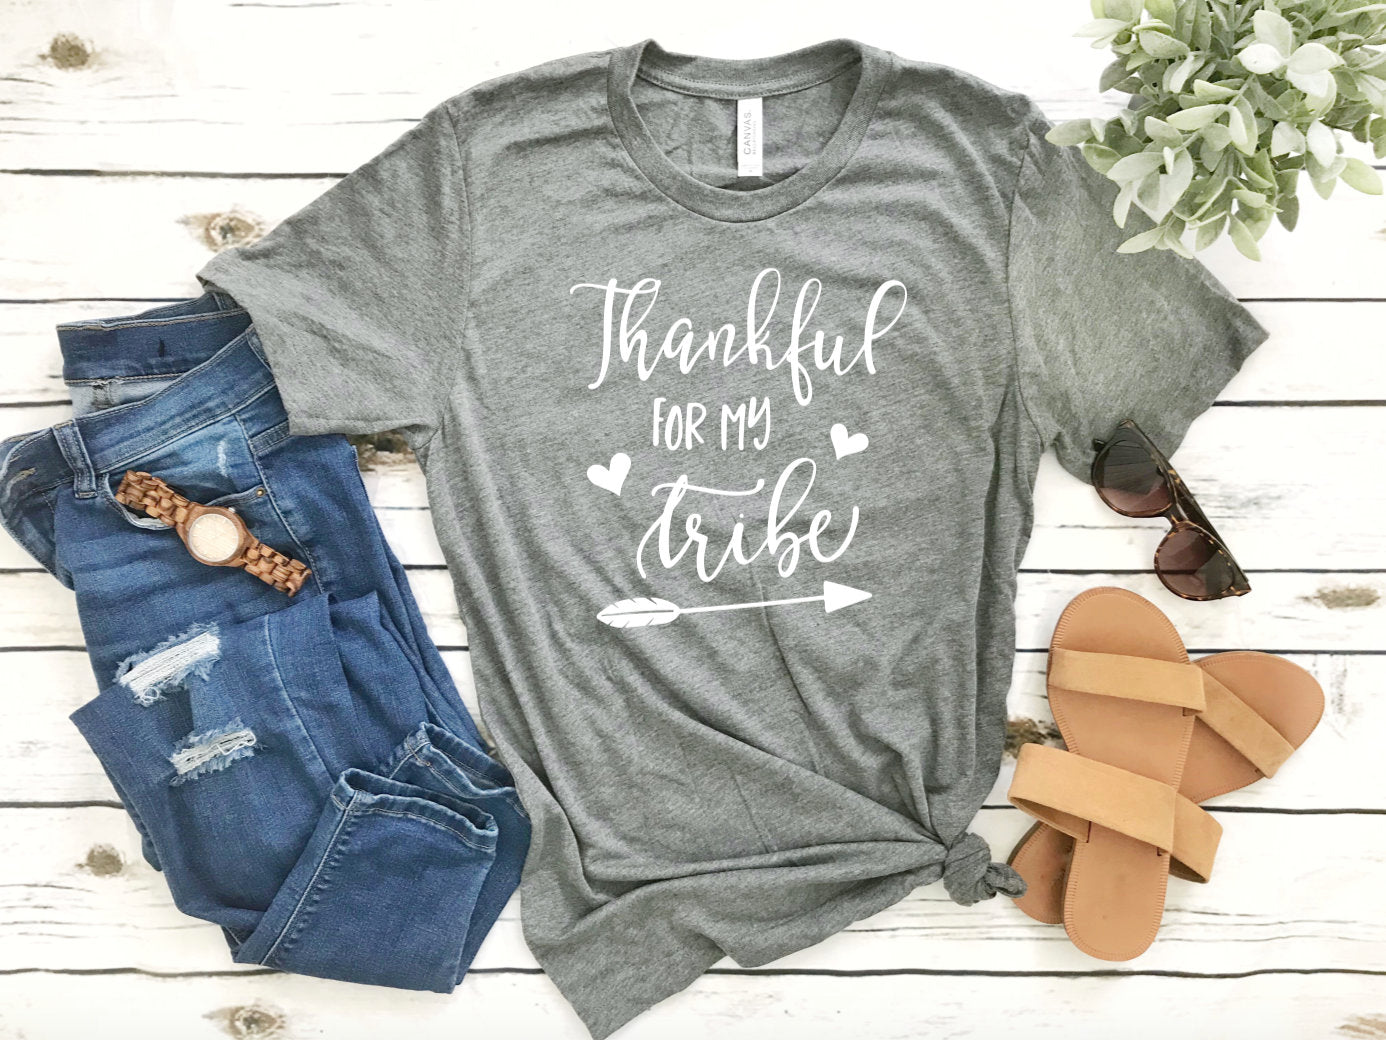 Thankful for my Tribe Deep Heather Unisex T-shirt - Thankful Shirt - Be Thankful - Motivational Shirt - Inspirational Shirt